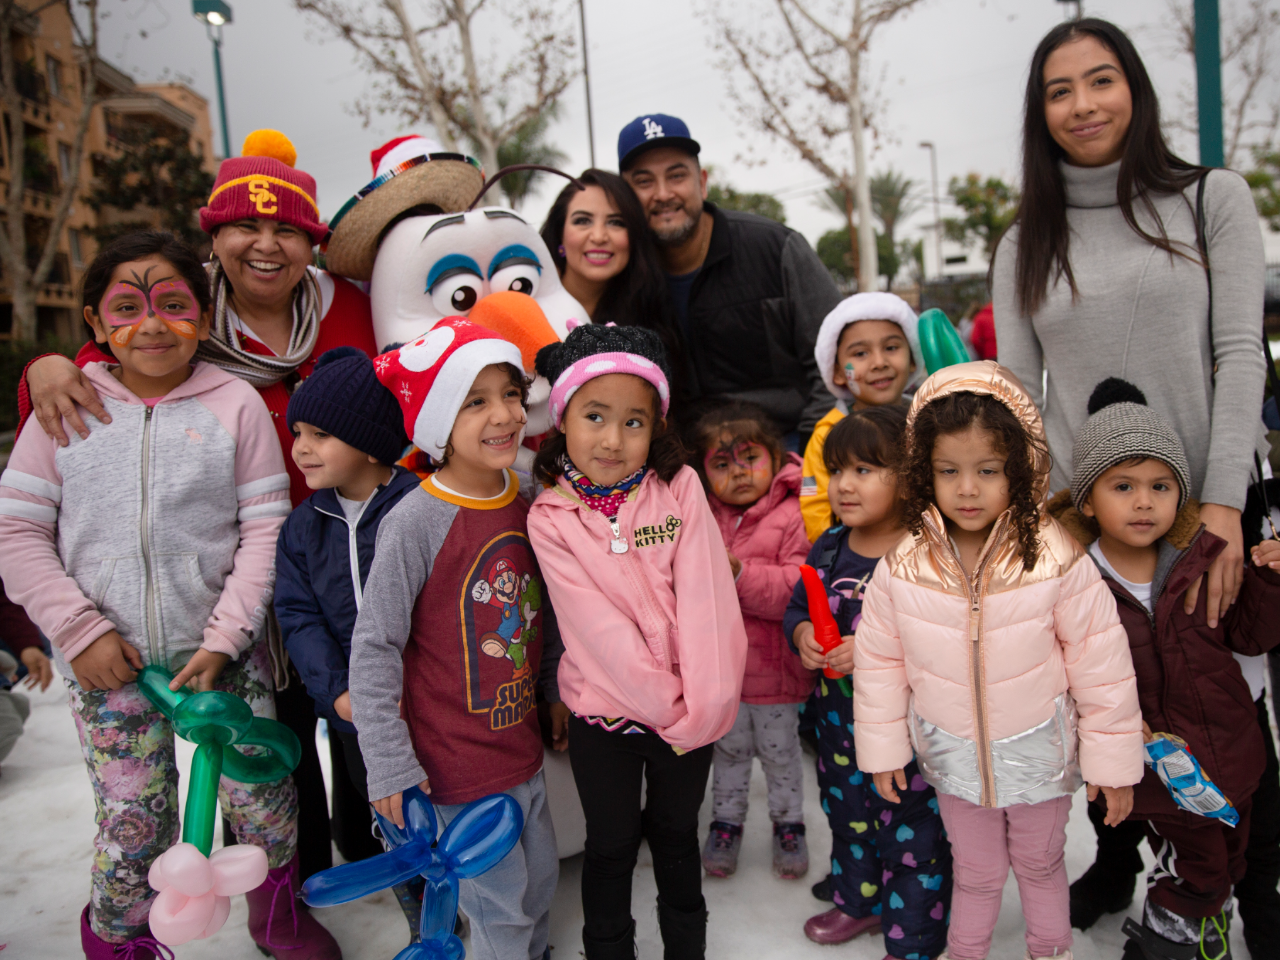 HSA Celebrates Its Winter Wonderland Event